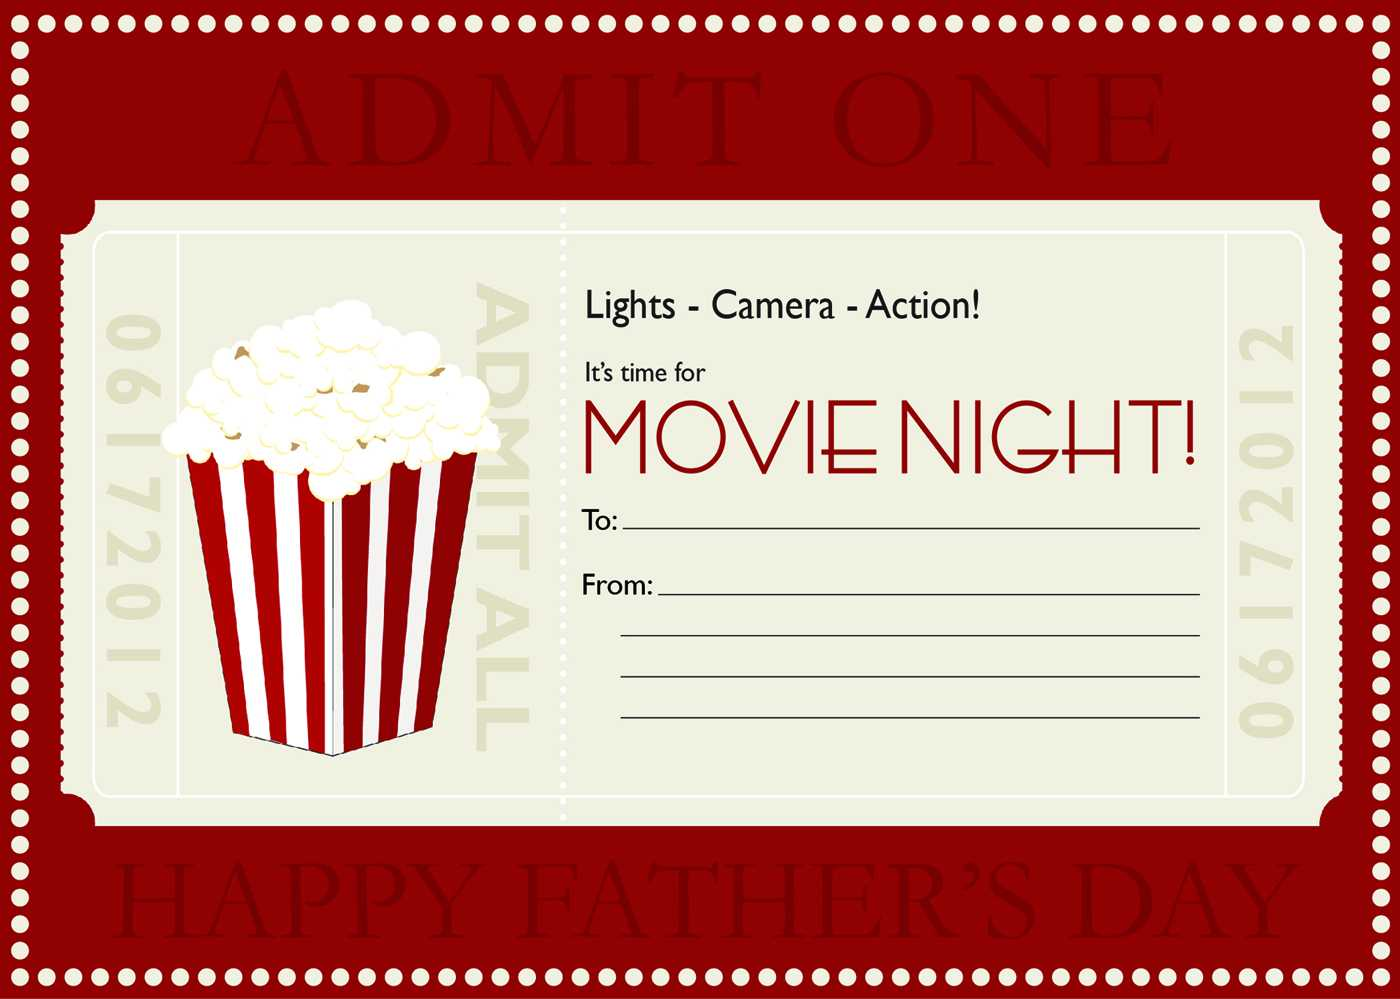 Movie Gift Certificate Templates | Gift Certificate Templates Pertaining To Movie Gift Certificate Template